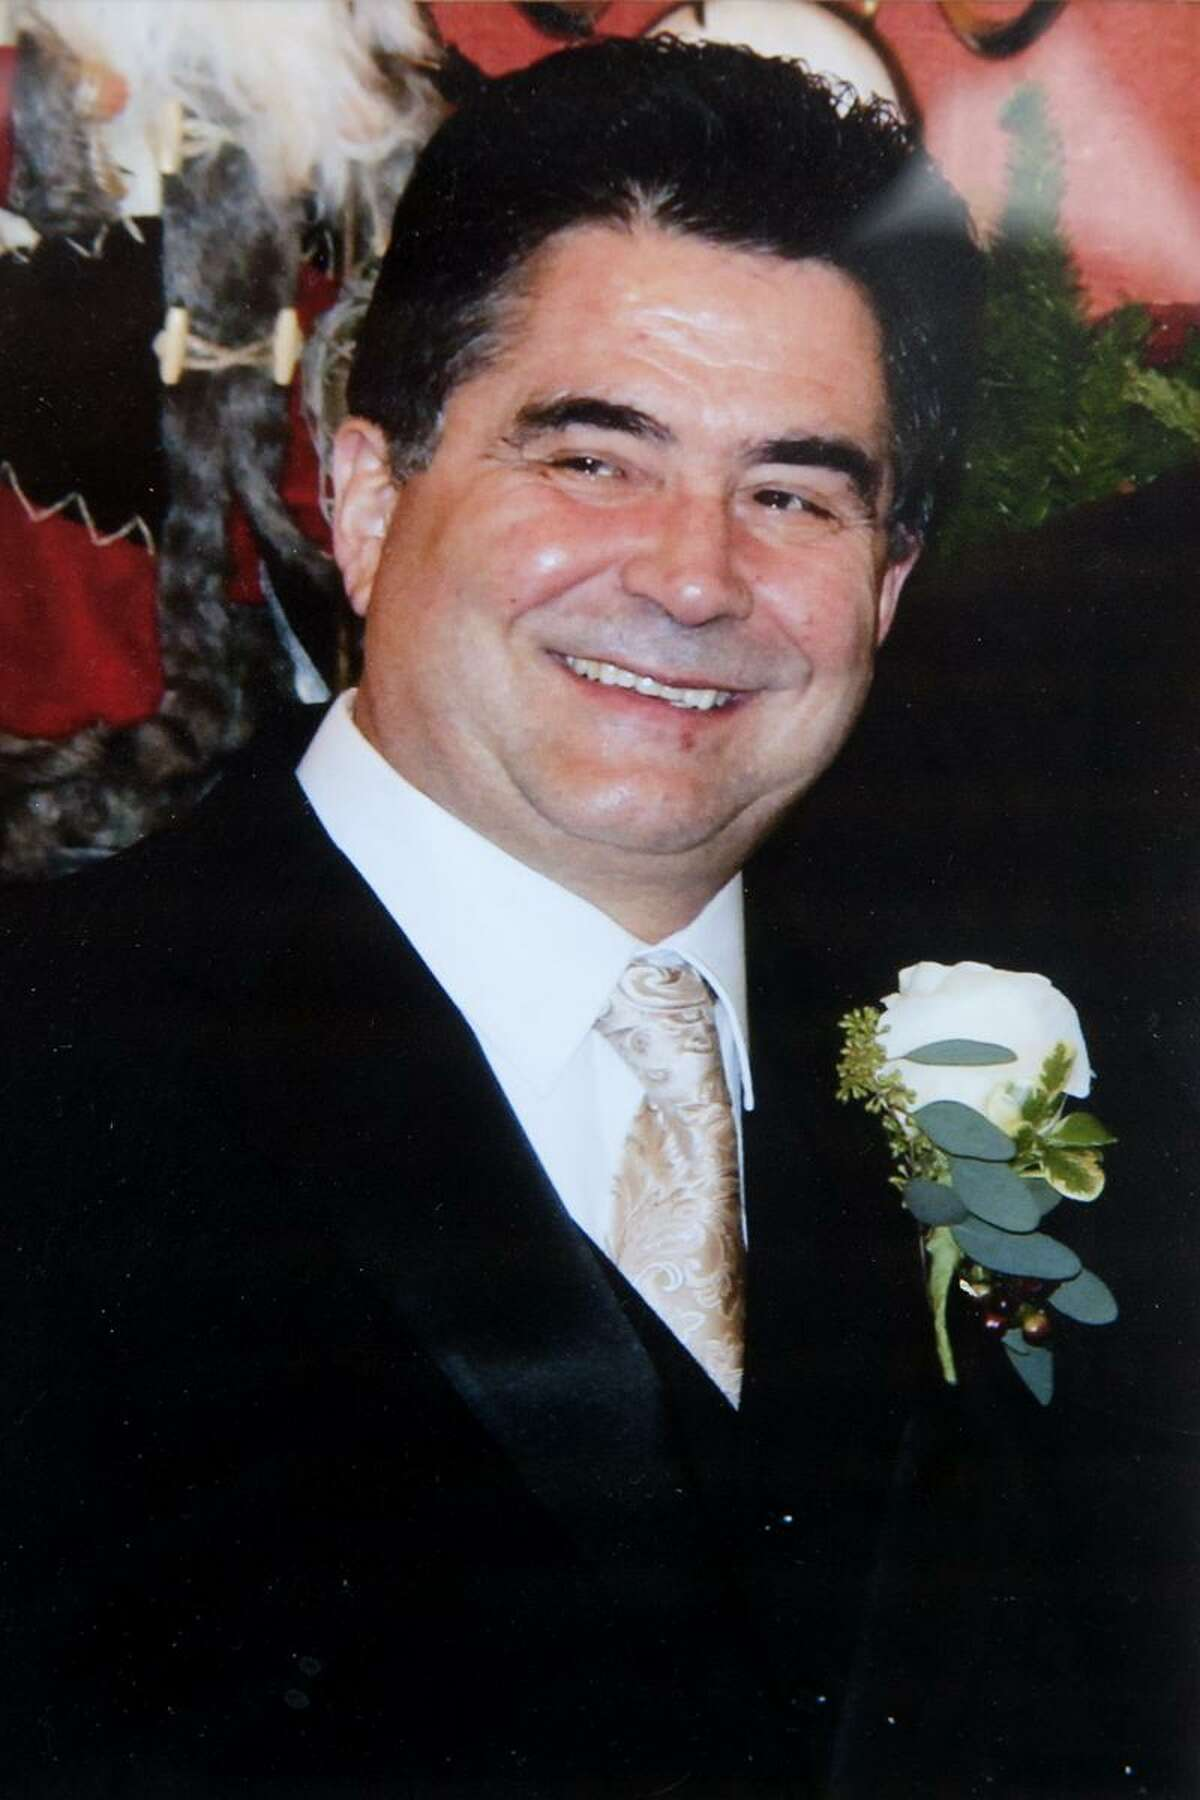 Jose Salgado was a Portuguese grocer, murdered at his store in 2015.